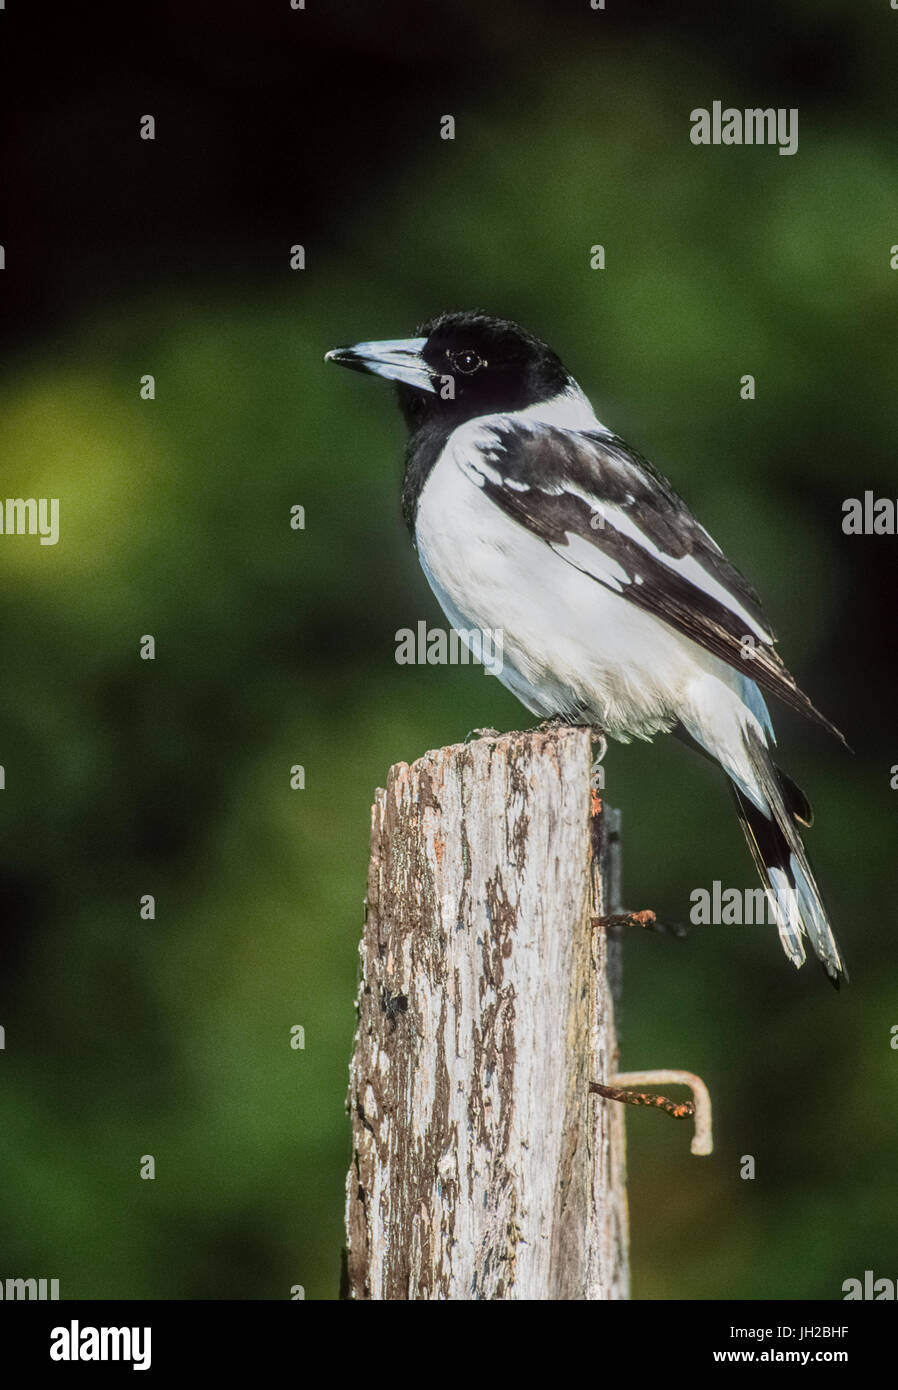 adult Pied Butcherbird, (Cracticus nigrogularis), perched on wooden post, Byron Bay, New South Wales, Australia - Stock Image